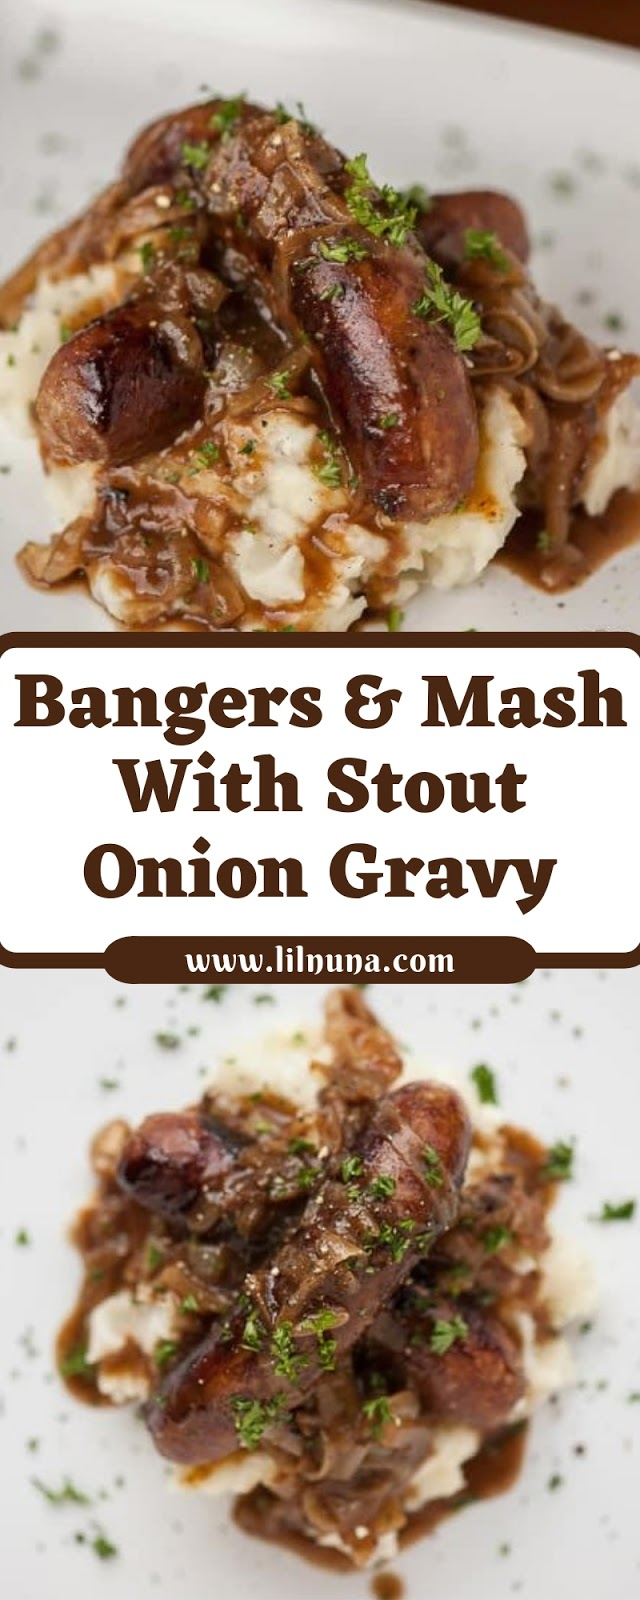 Bangers & Mash With Stout Onion Gravy